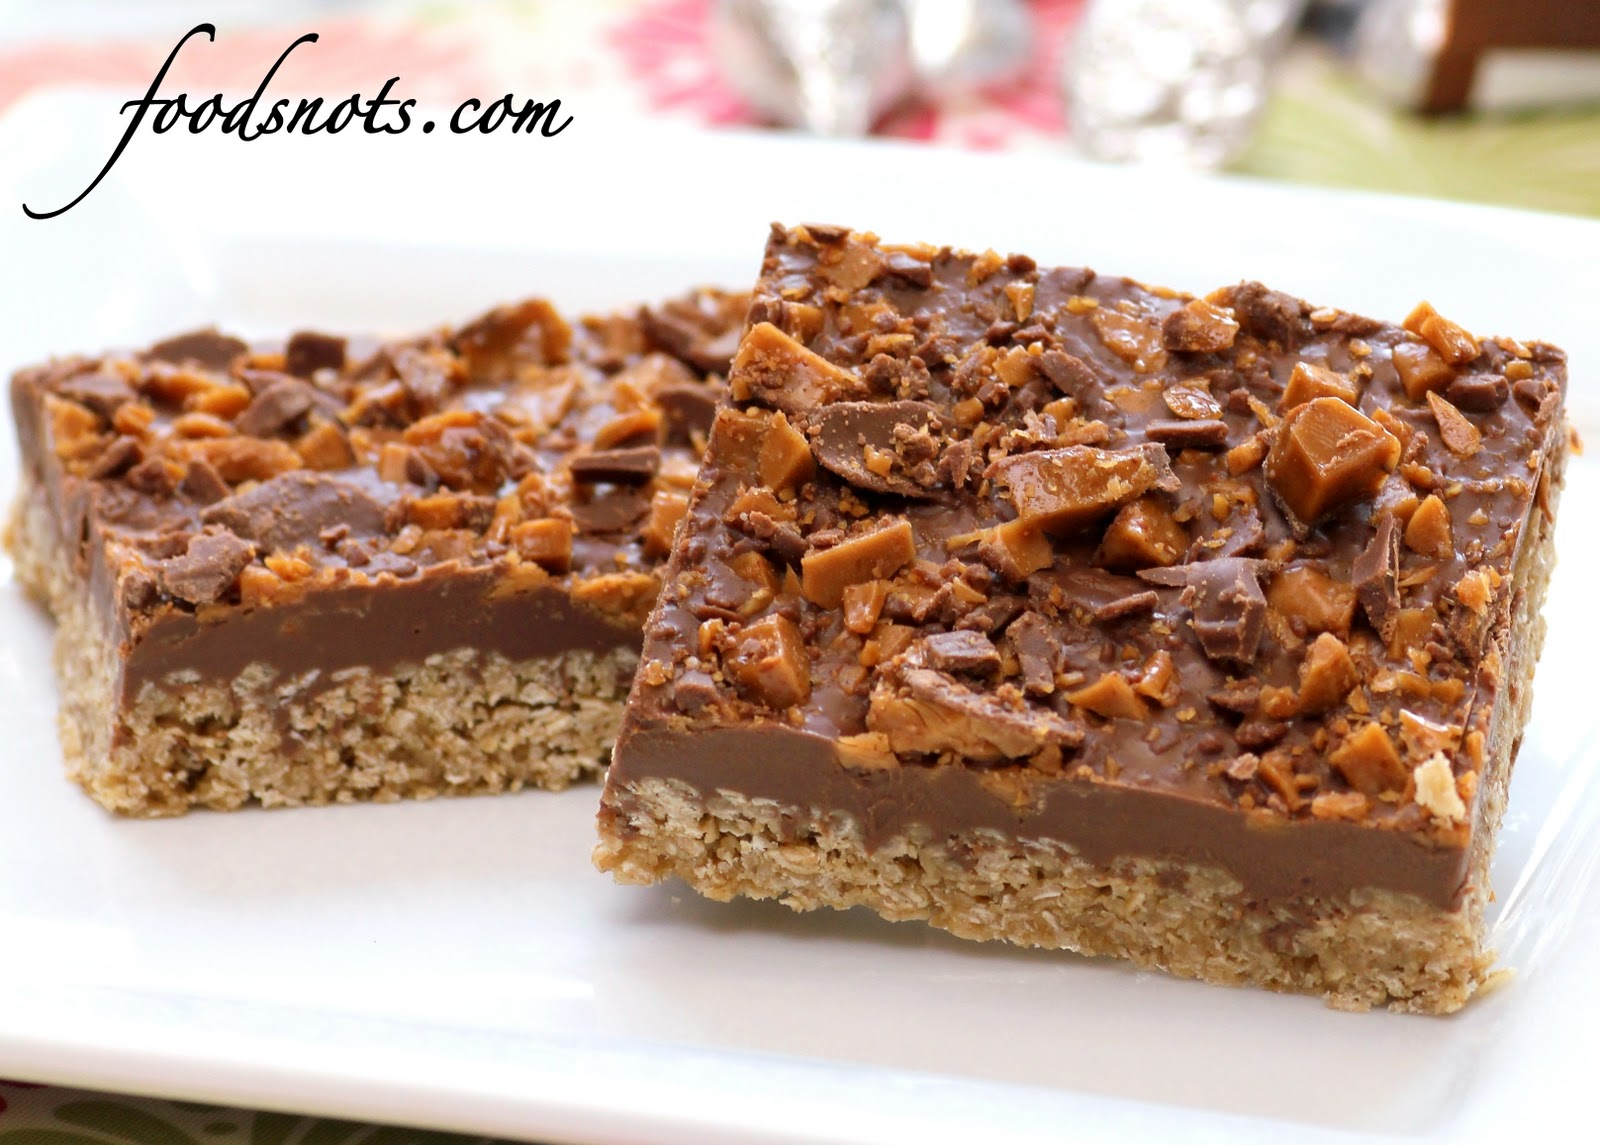 Recipe Snobs: Chocolate Oatmeal Bars